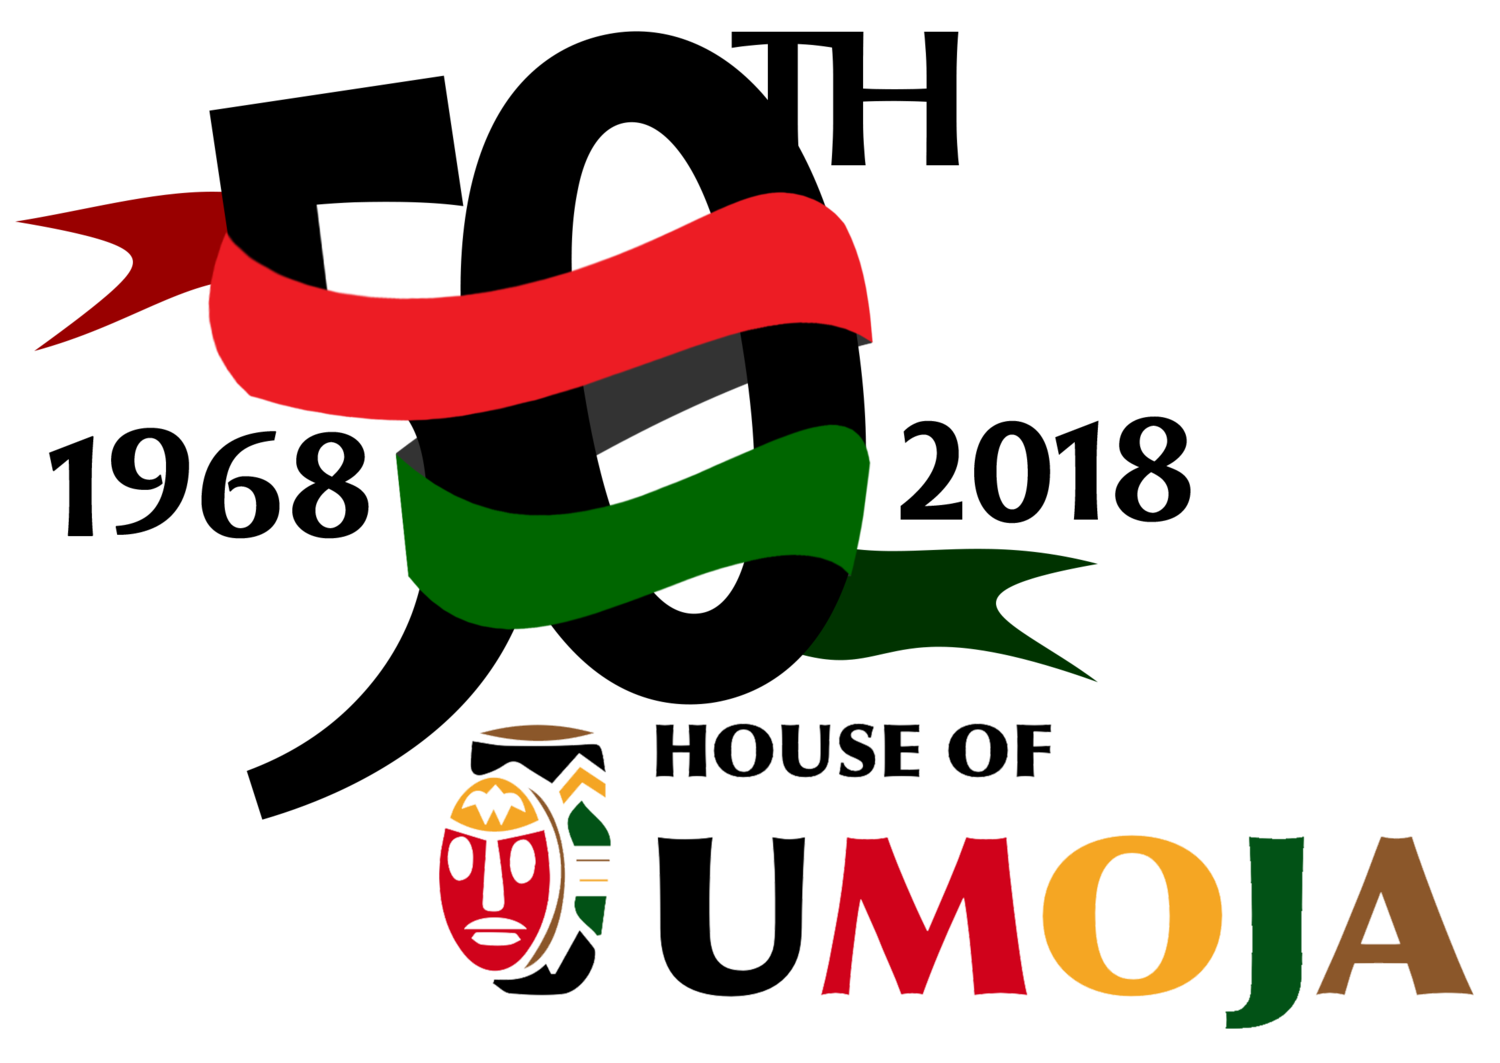 The House Of Umoja